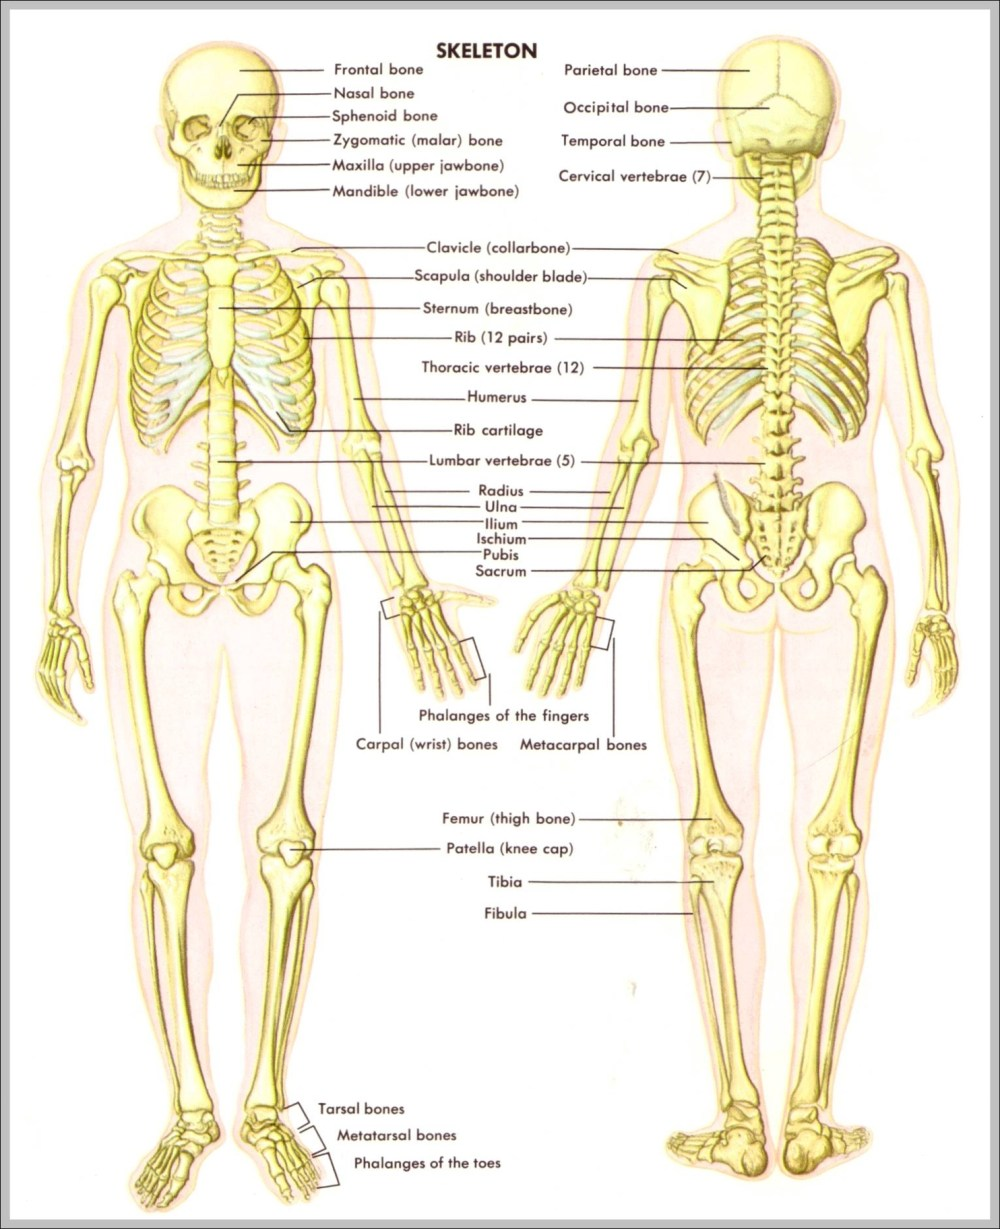 medium resolution of back skeletal anatomy diagram back skeletal anatomy chart human anatomy diagrams and charts explained this diagram depicts back skeletal anatomy with